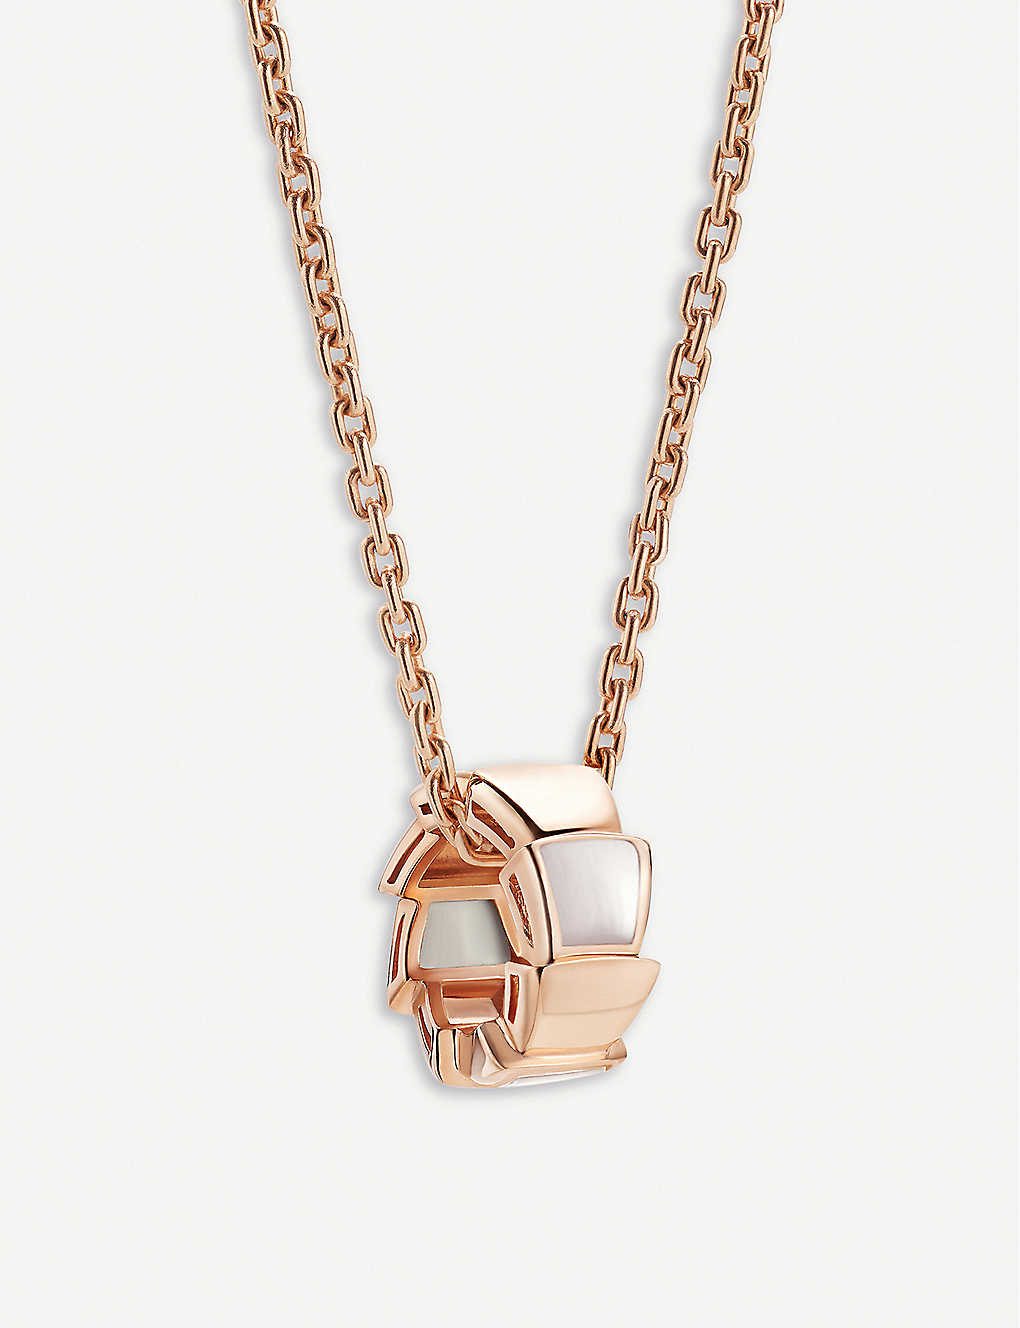 18b8fae270a7a BVLGARI Serpenti viper 18ct rose-gold and demi pavé diamond necklace